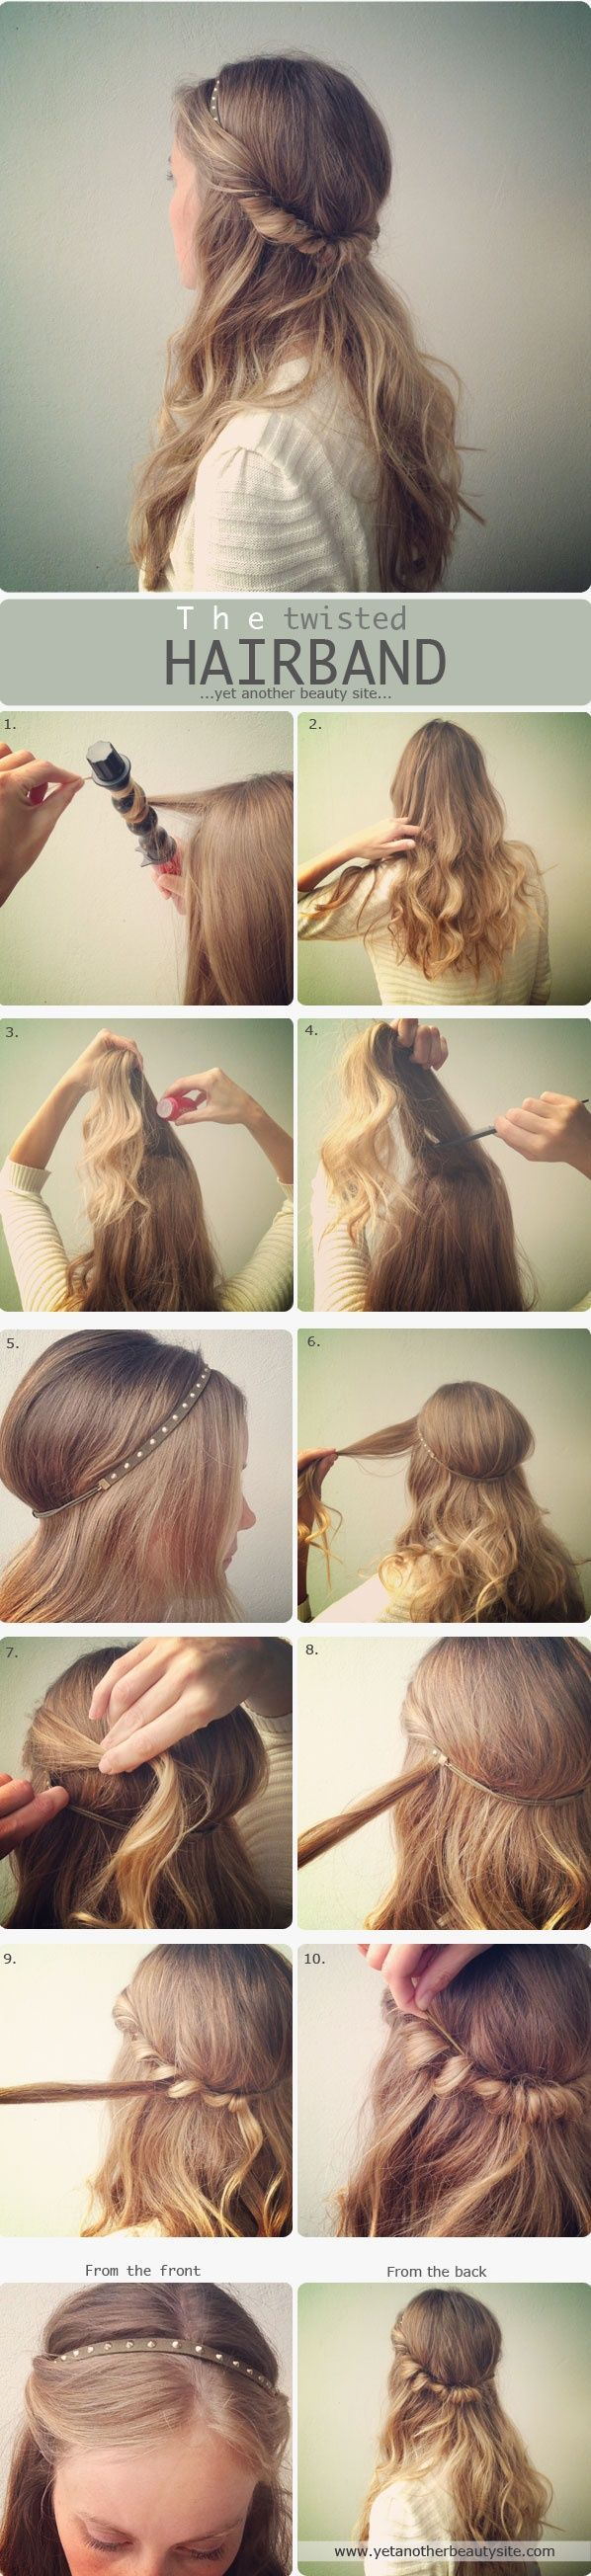 easy hairstyle of the twisted hairband Women s Fashion easy hairstyles   hairstyles